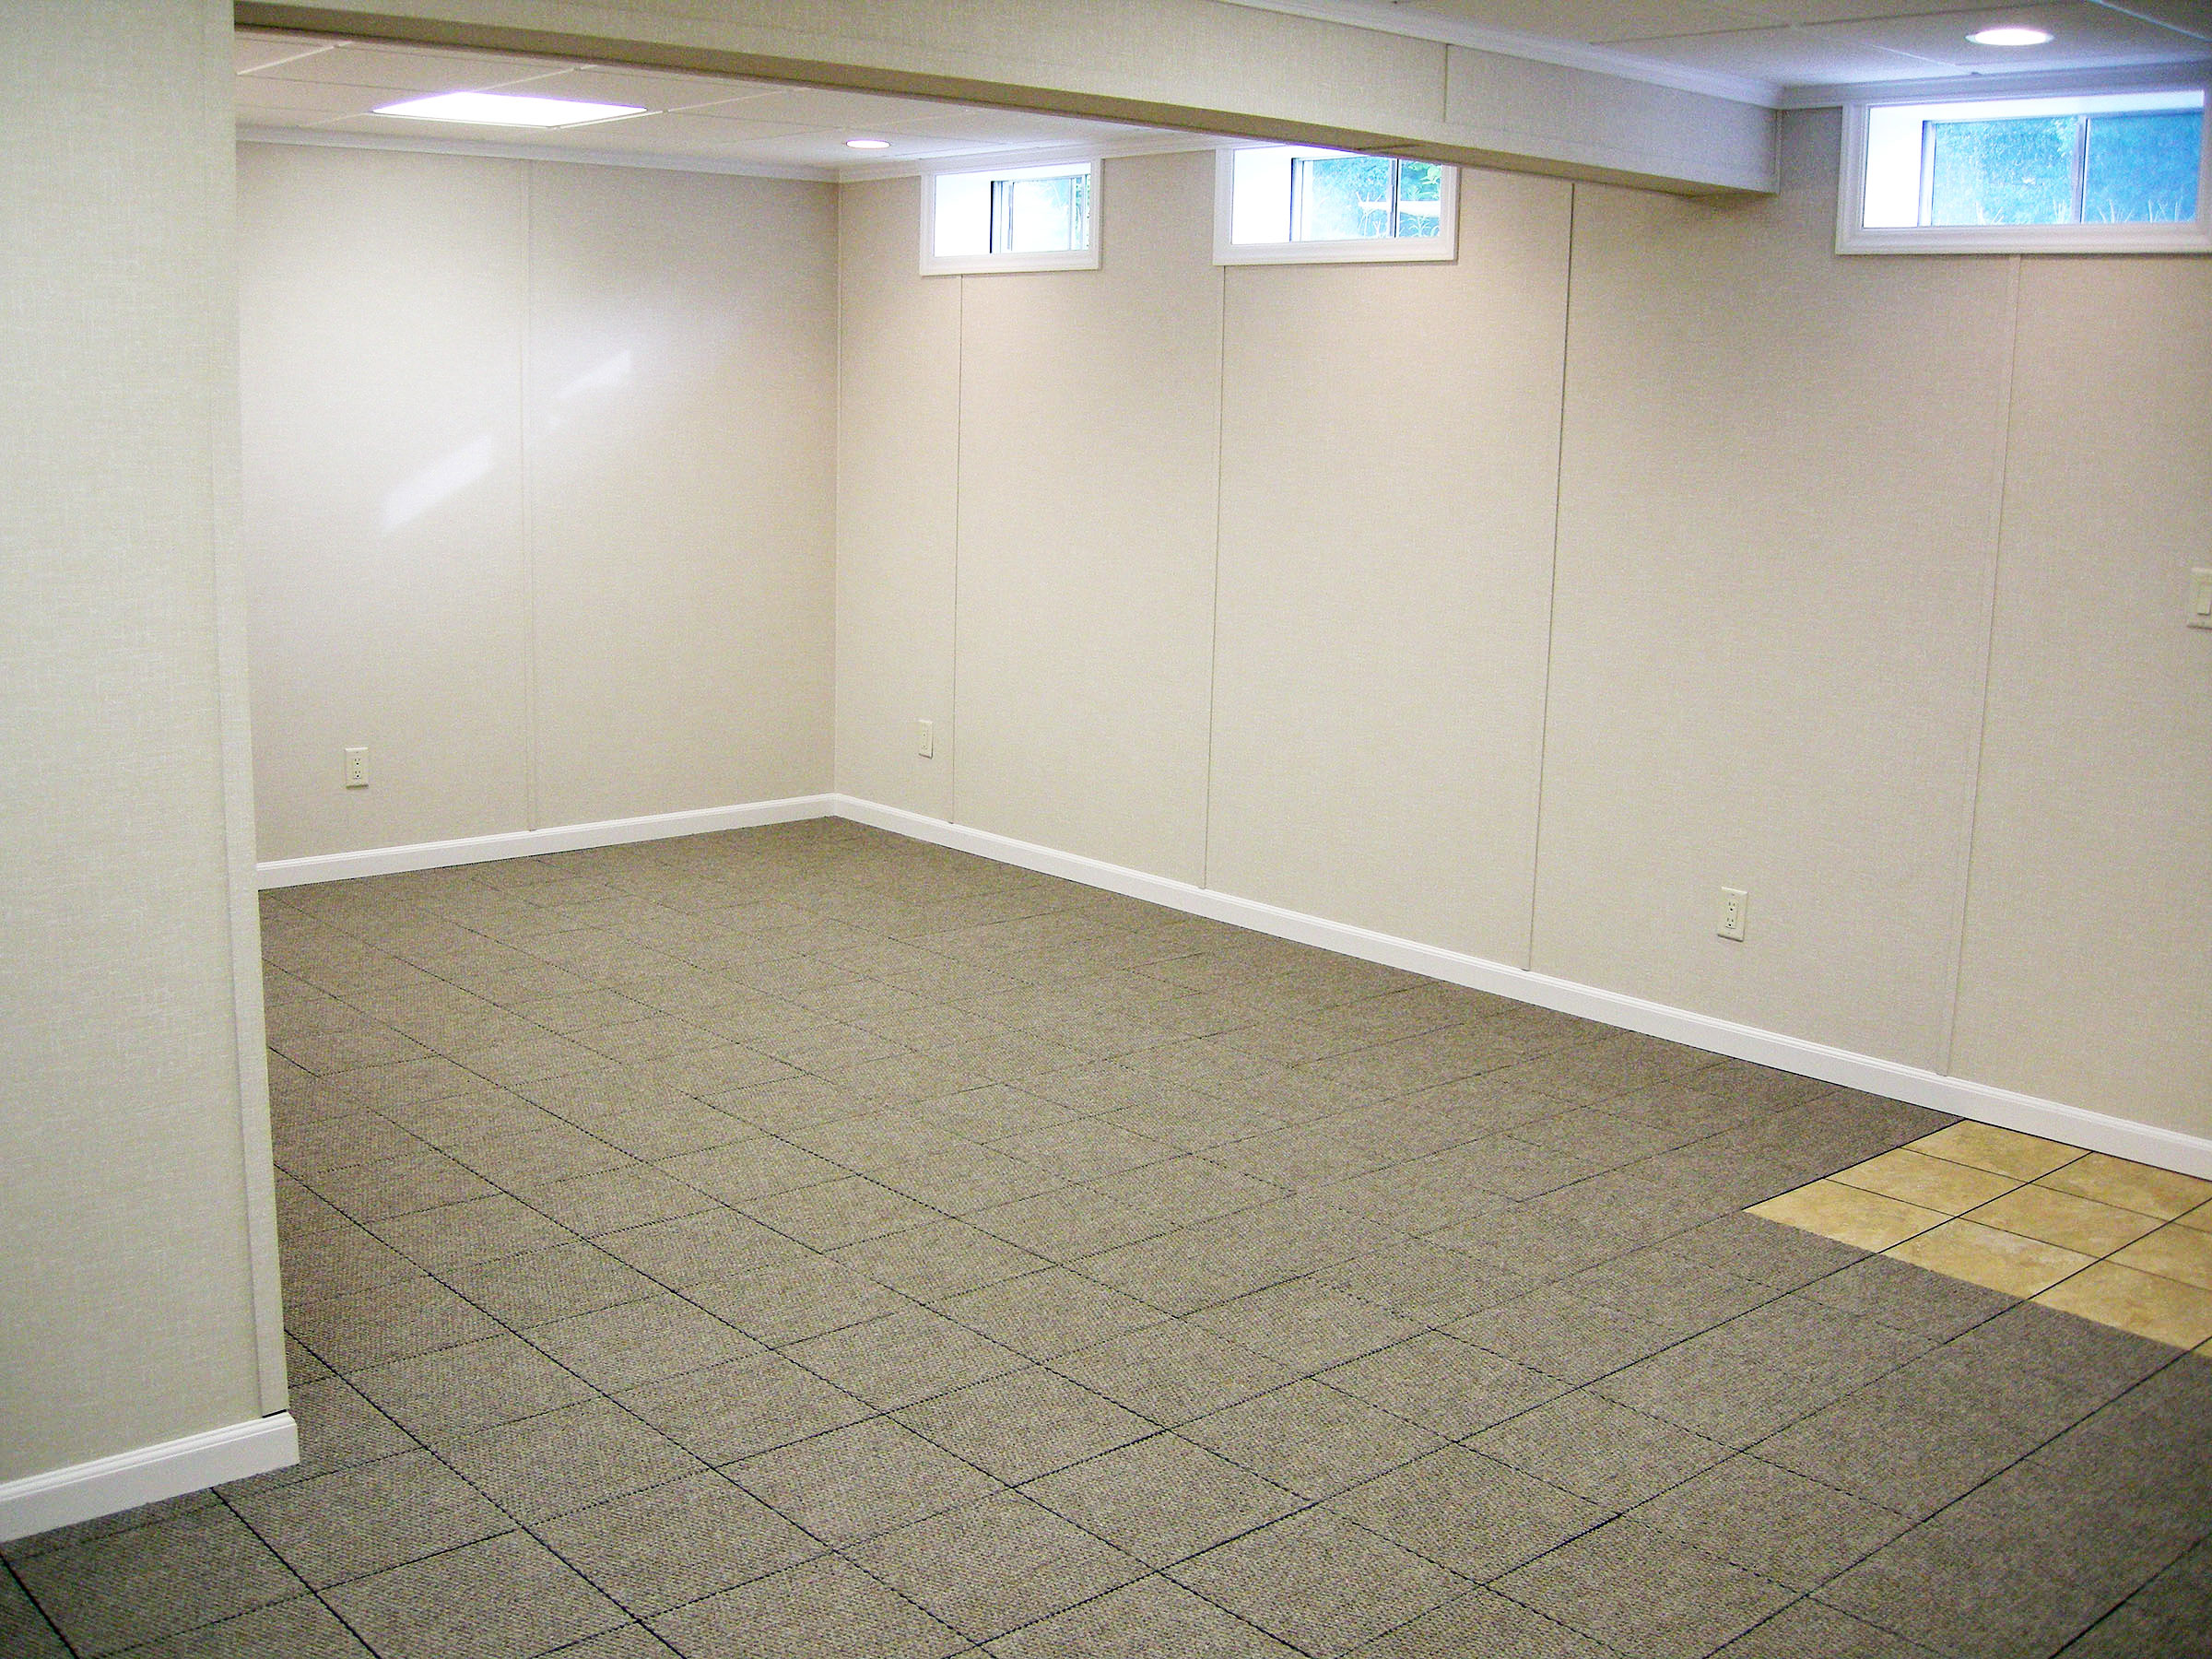 Basement Flooring Options That Last!